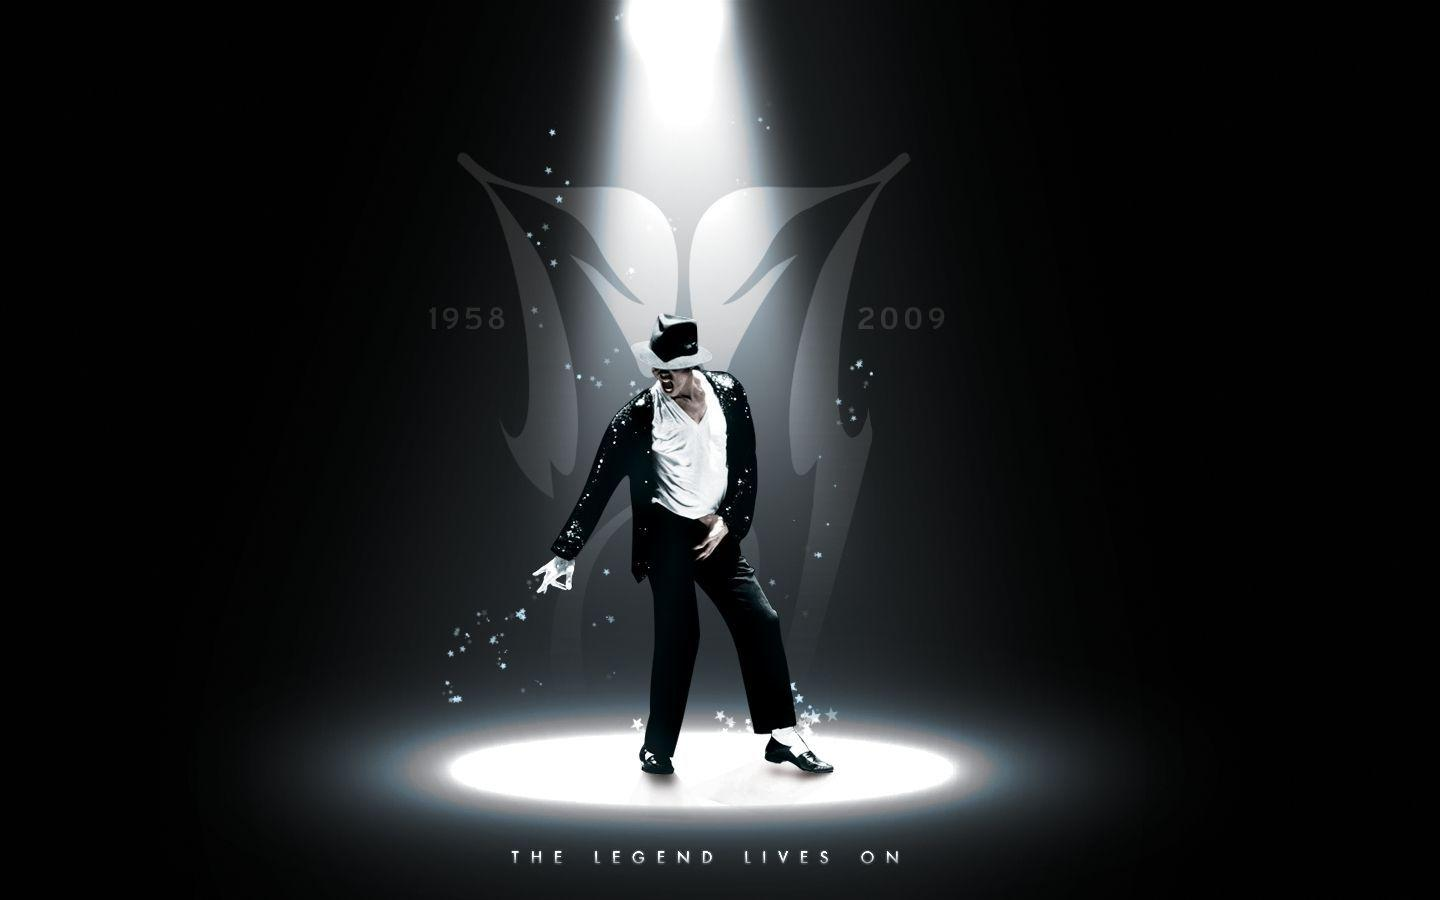 michael jackson images wallpapers - photo #11